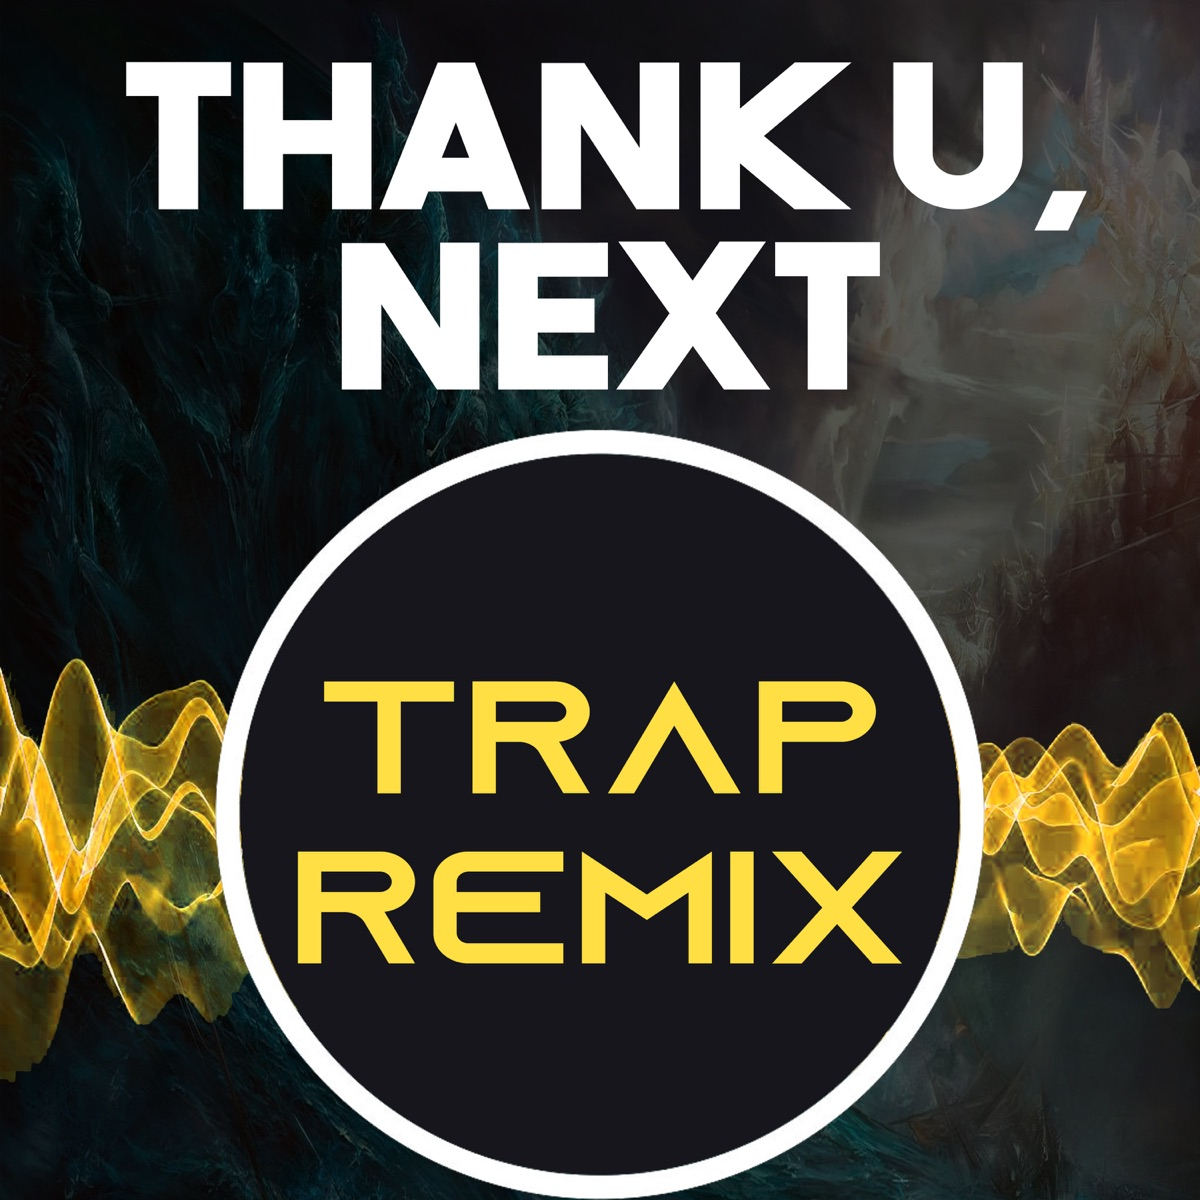 Thank U Next Trap Remix Homage to Ariana Grande - Single The Trap Remix Guys CD cover